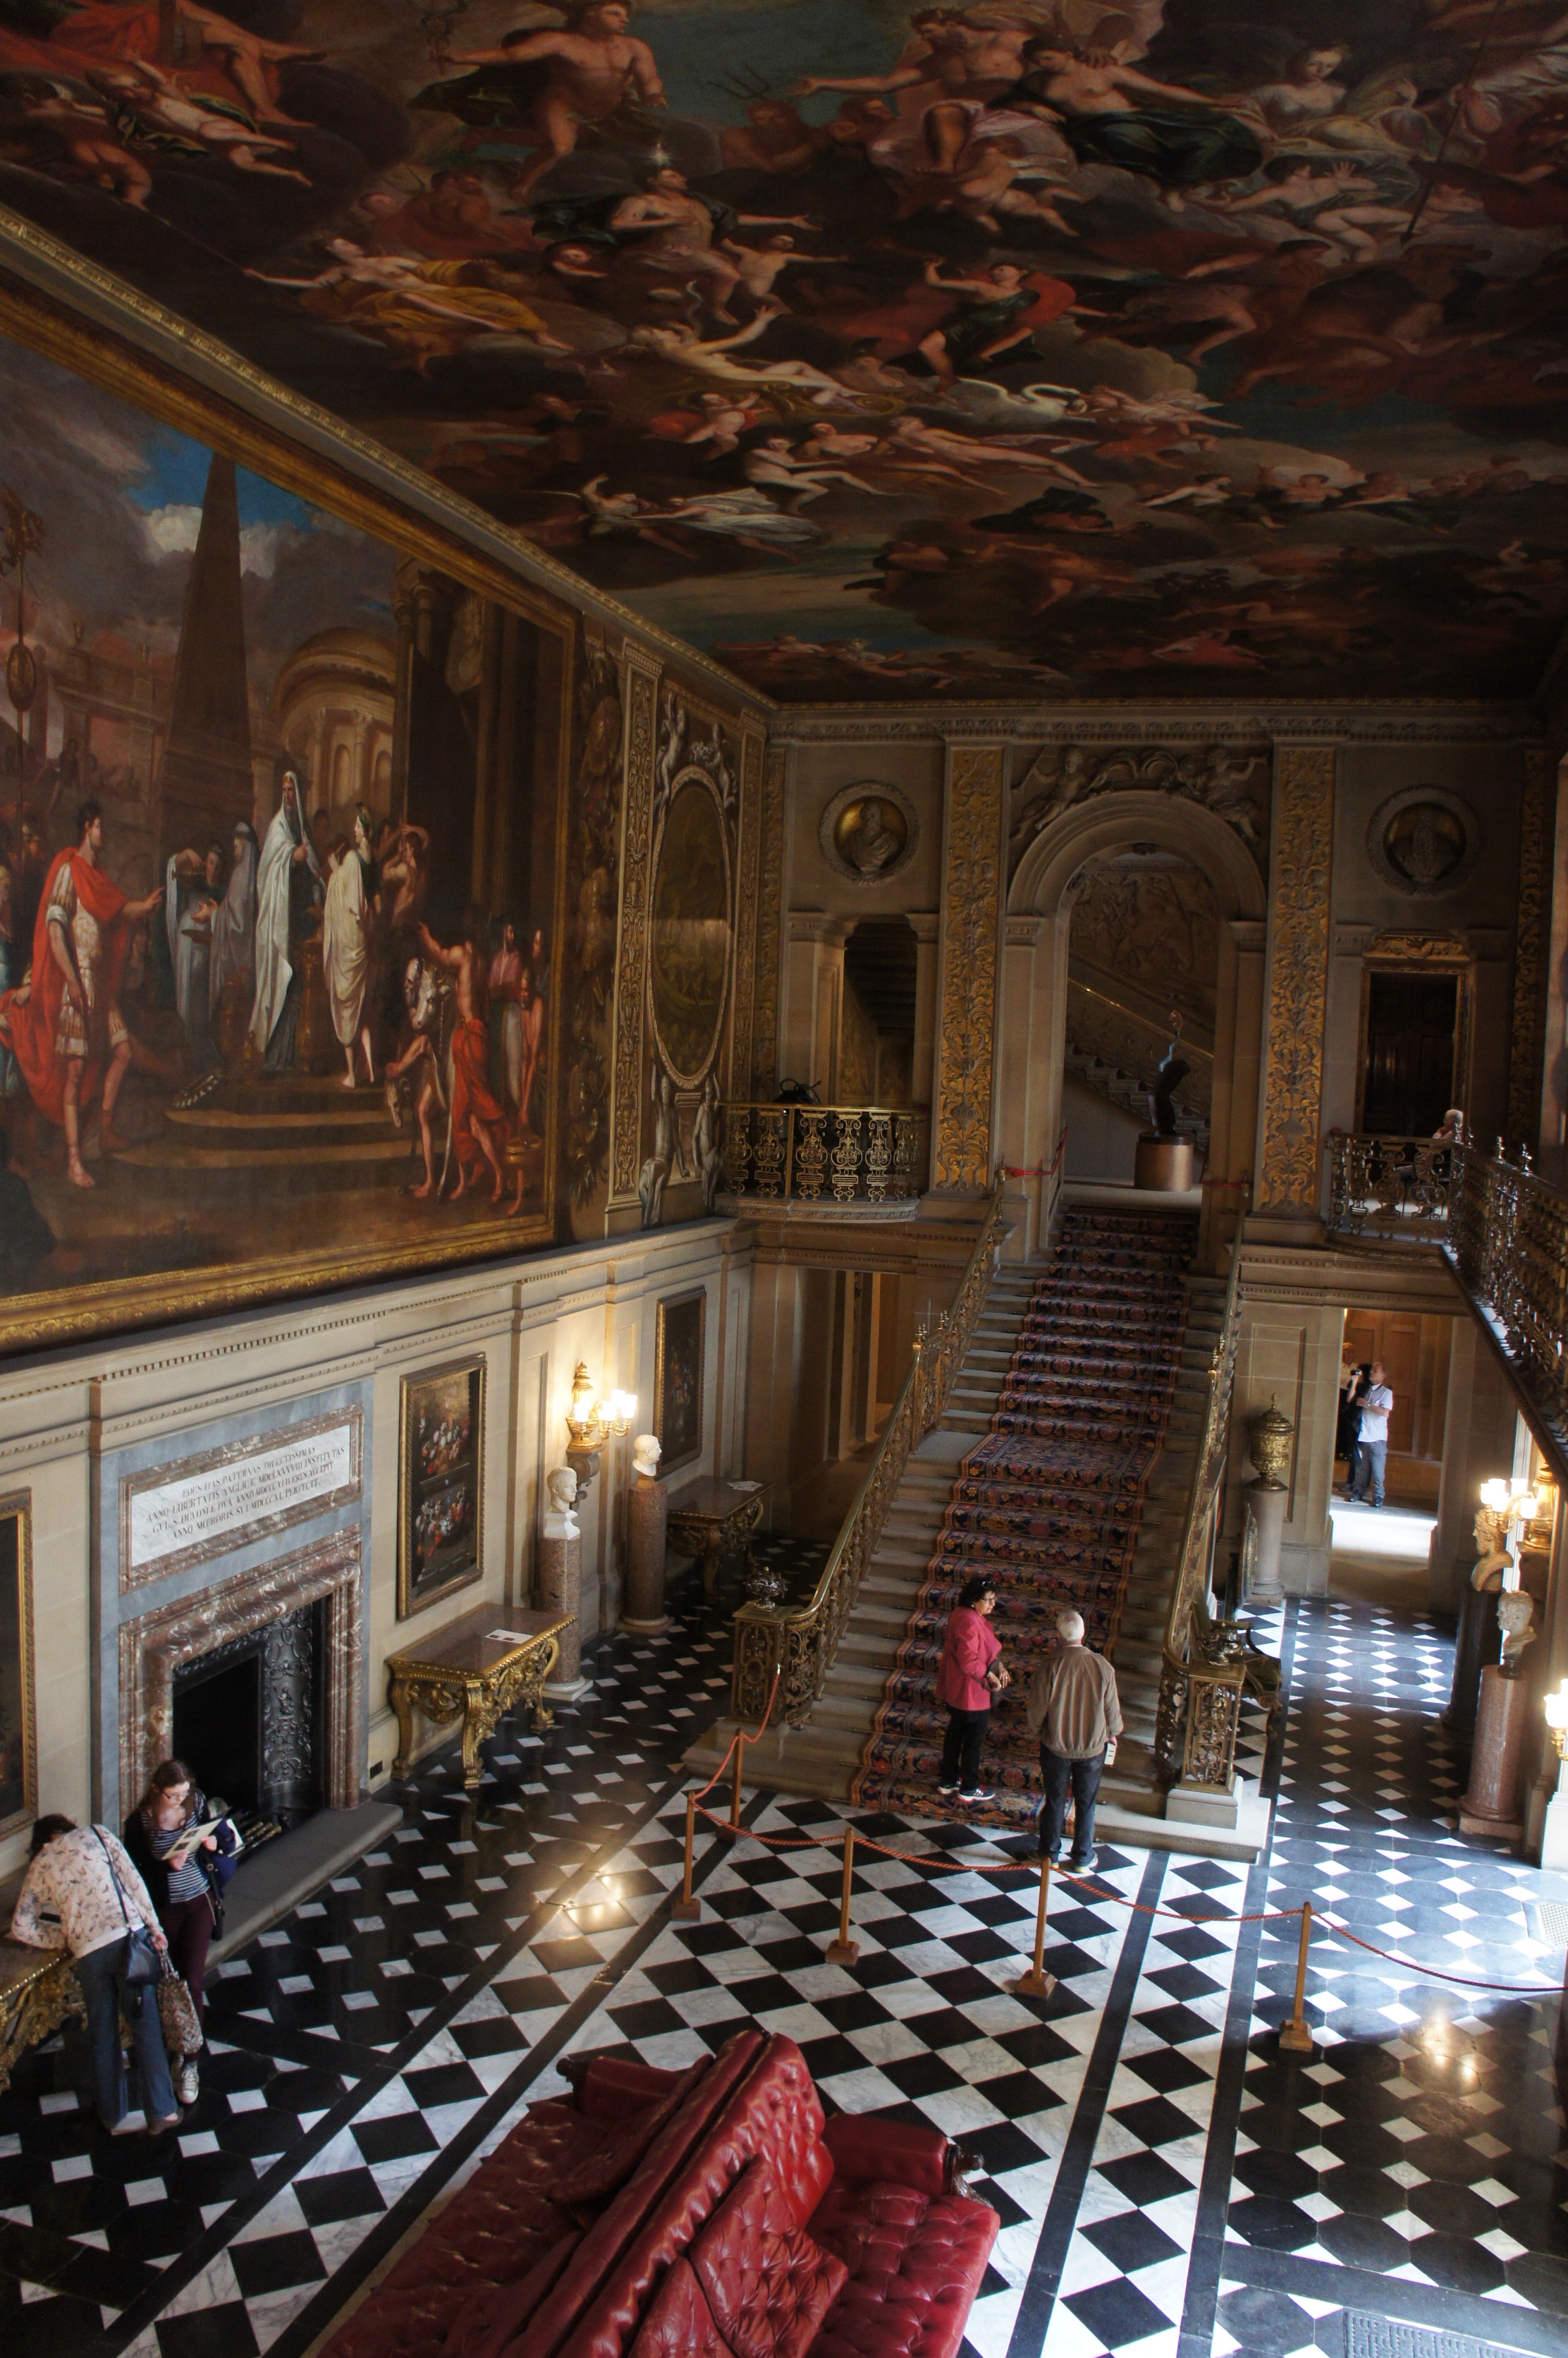 The Painted Hall in Chatsworth is also recognisable from the movie as Lizzy hesitates here during the tour of the house.